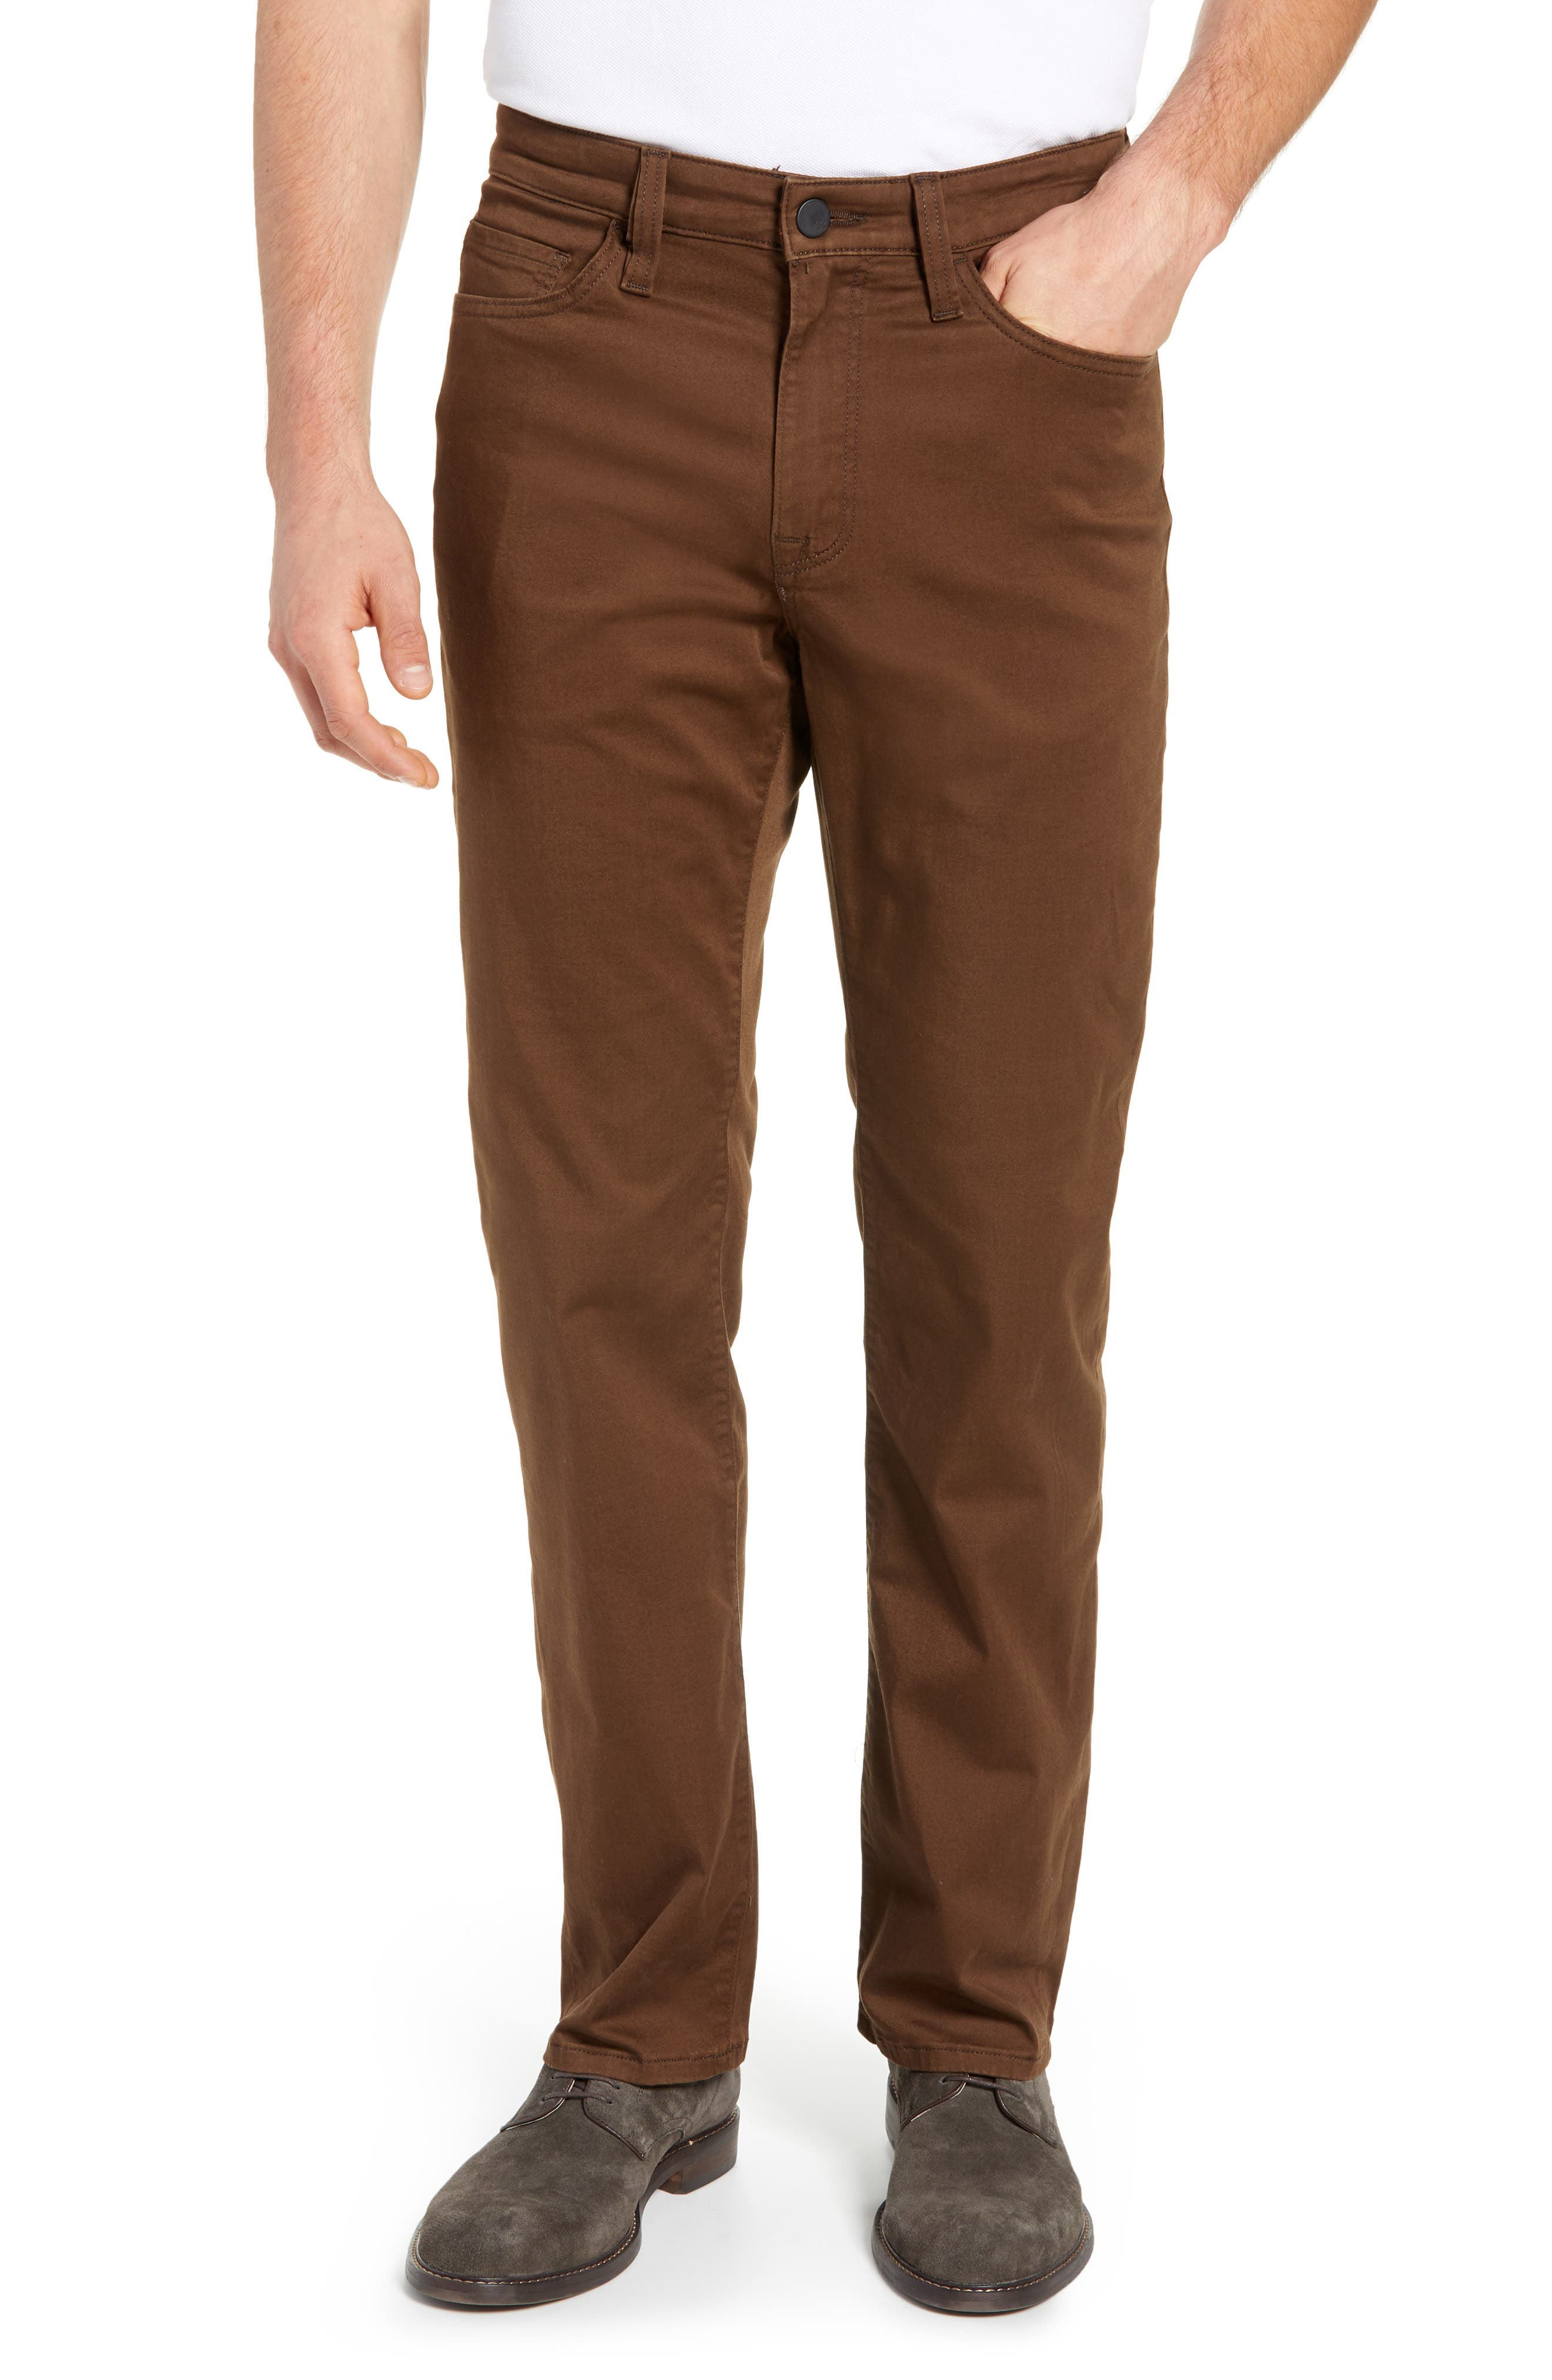 Charisma Relaxed Fit Twill Pants,                         Main,                         color, CAF TWILL